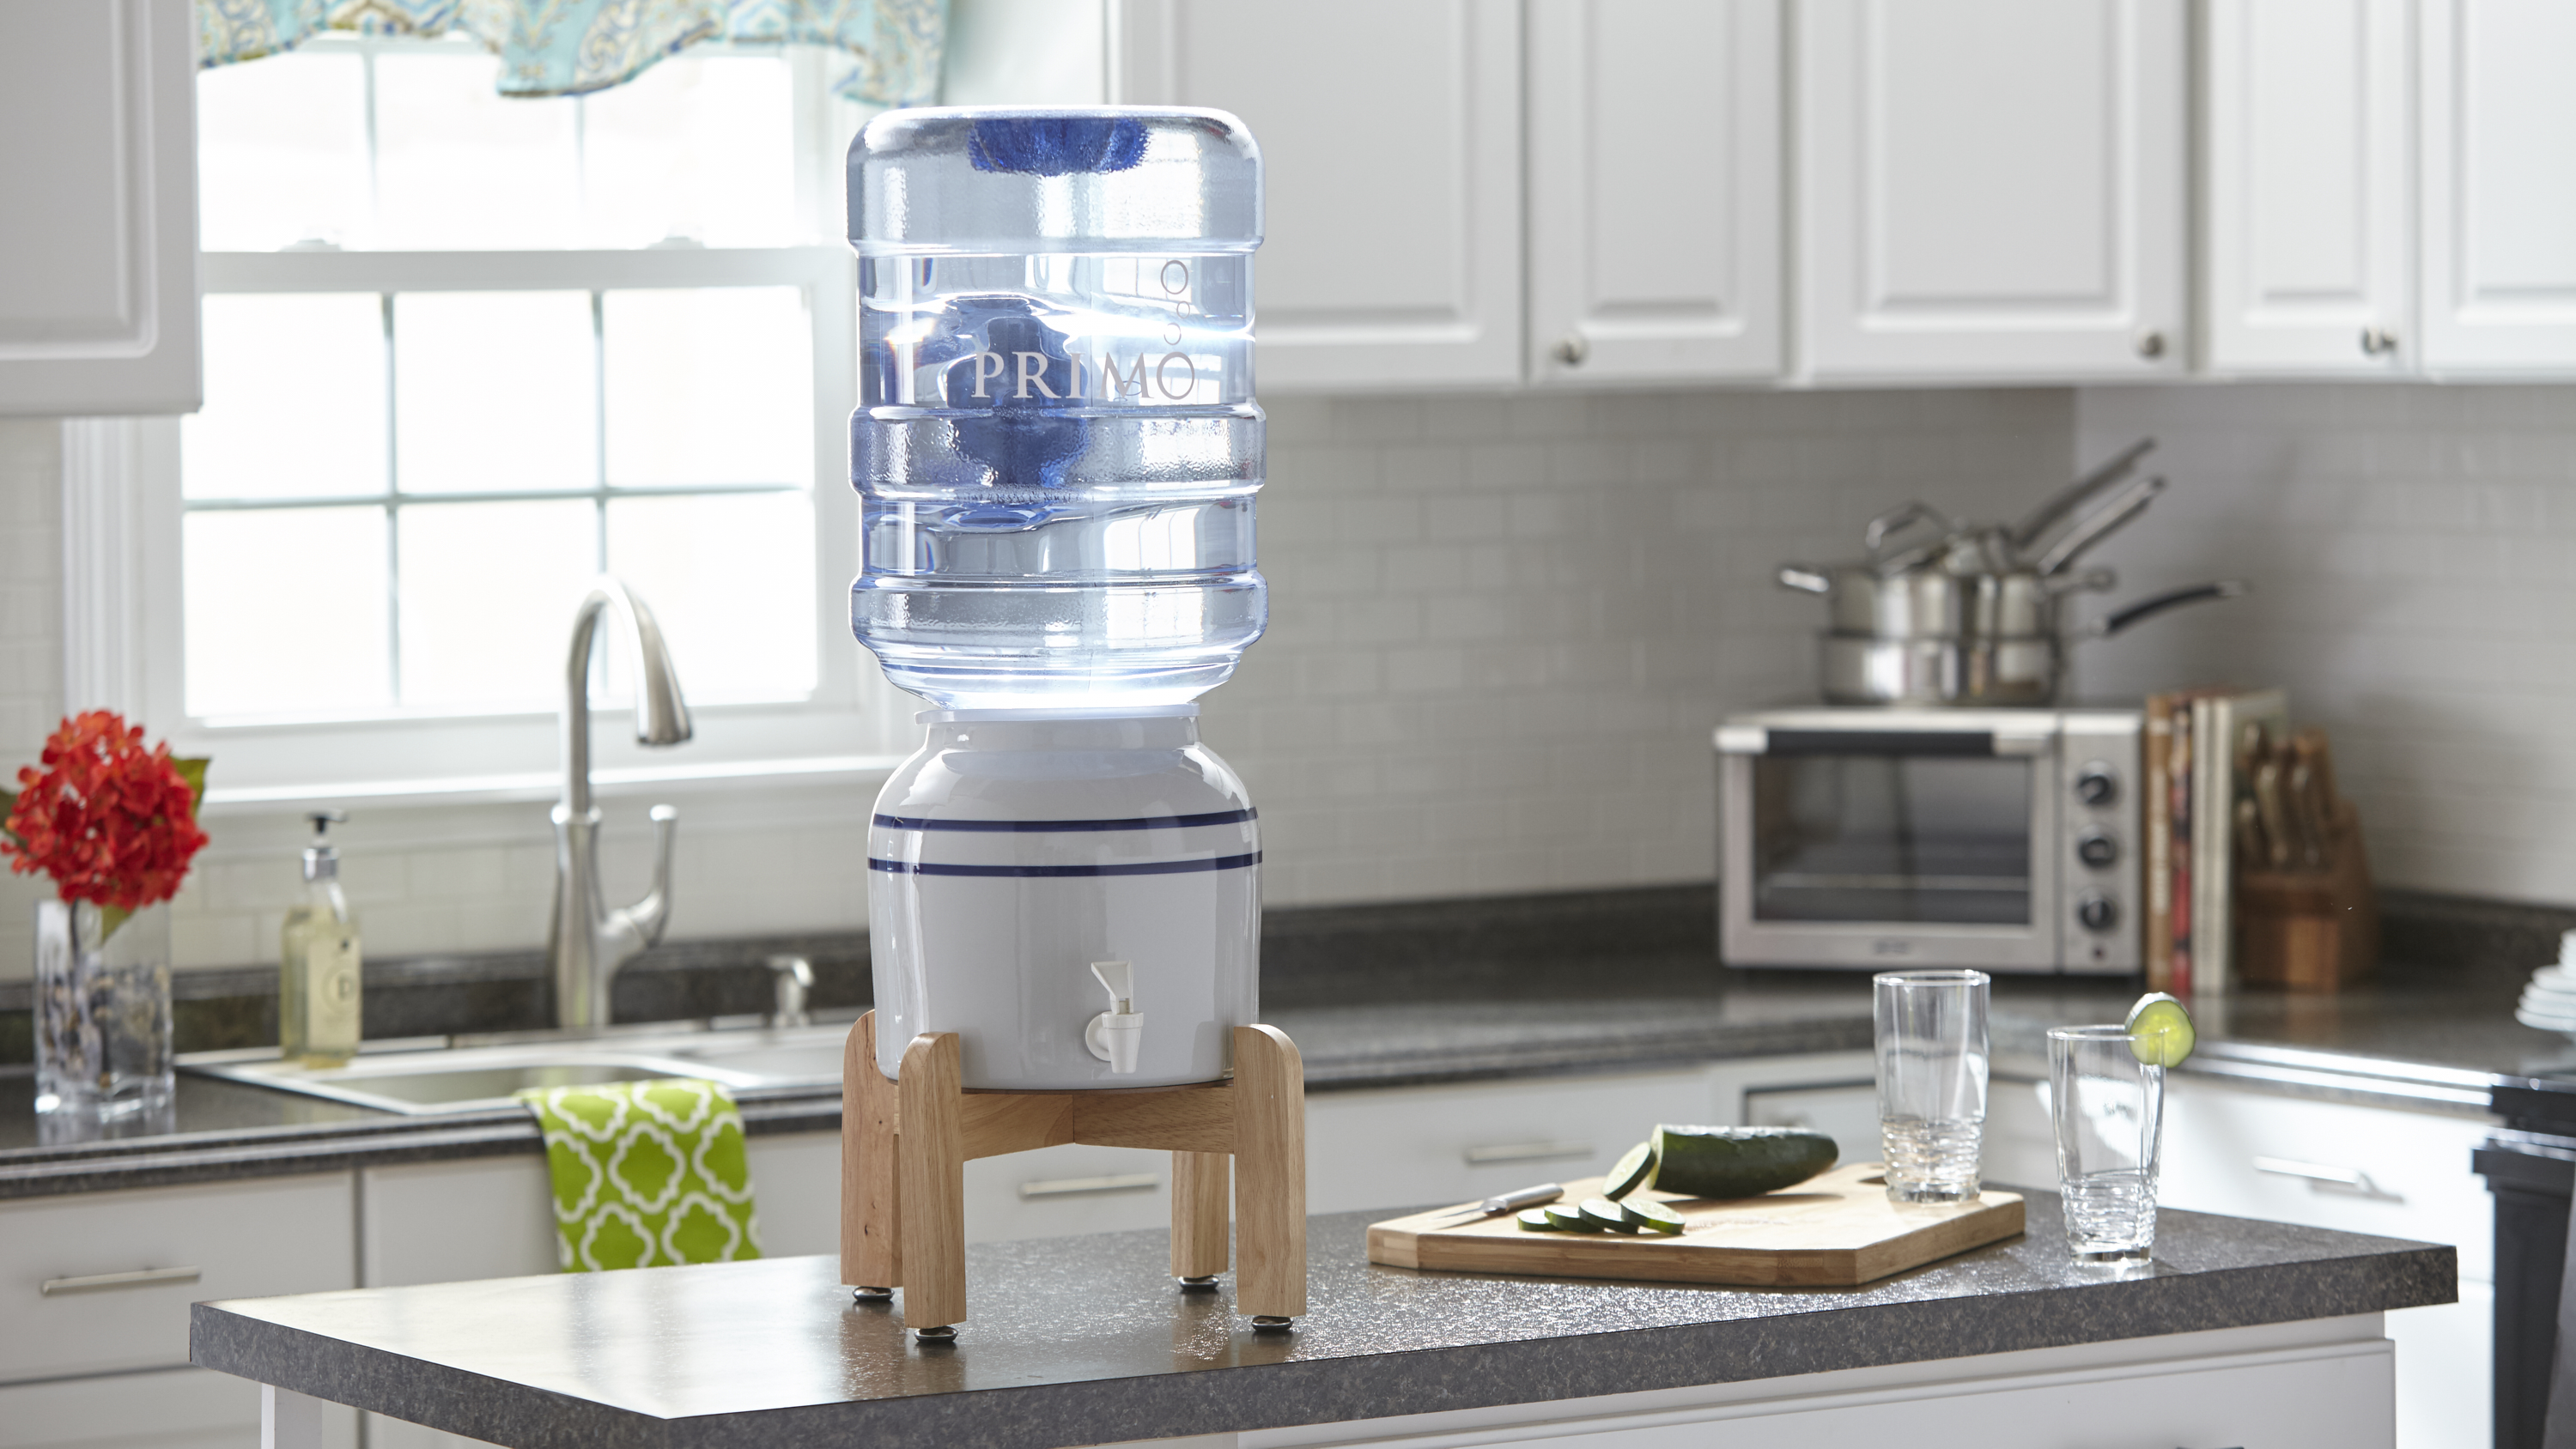 dispenser kitchen moving island primo ceramic water with stand model 900114 walmart com